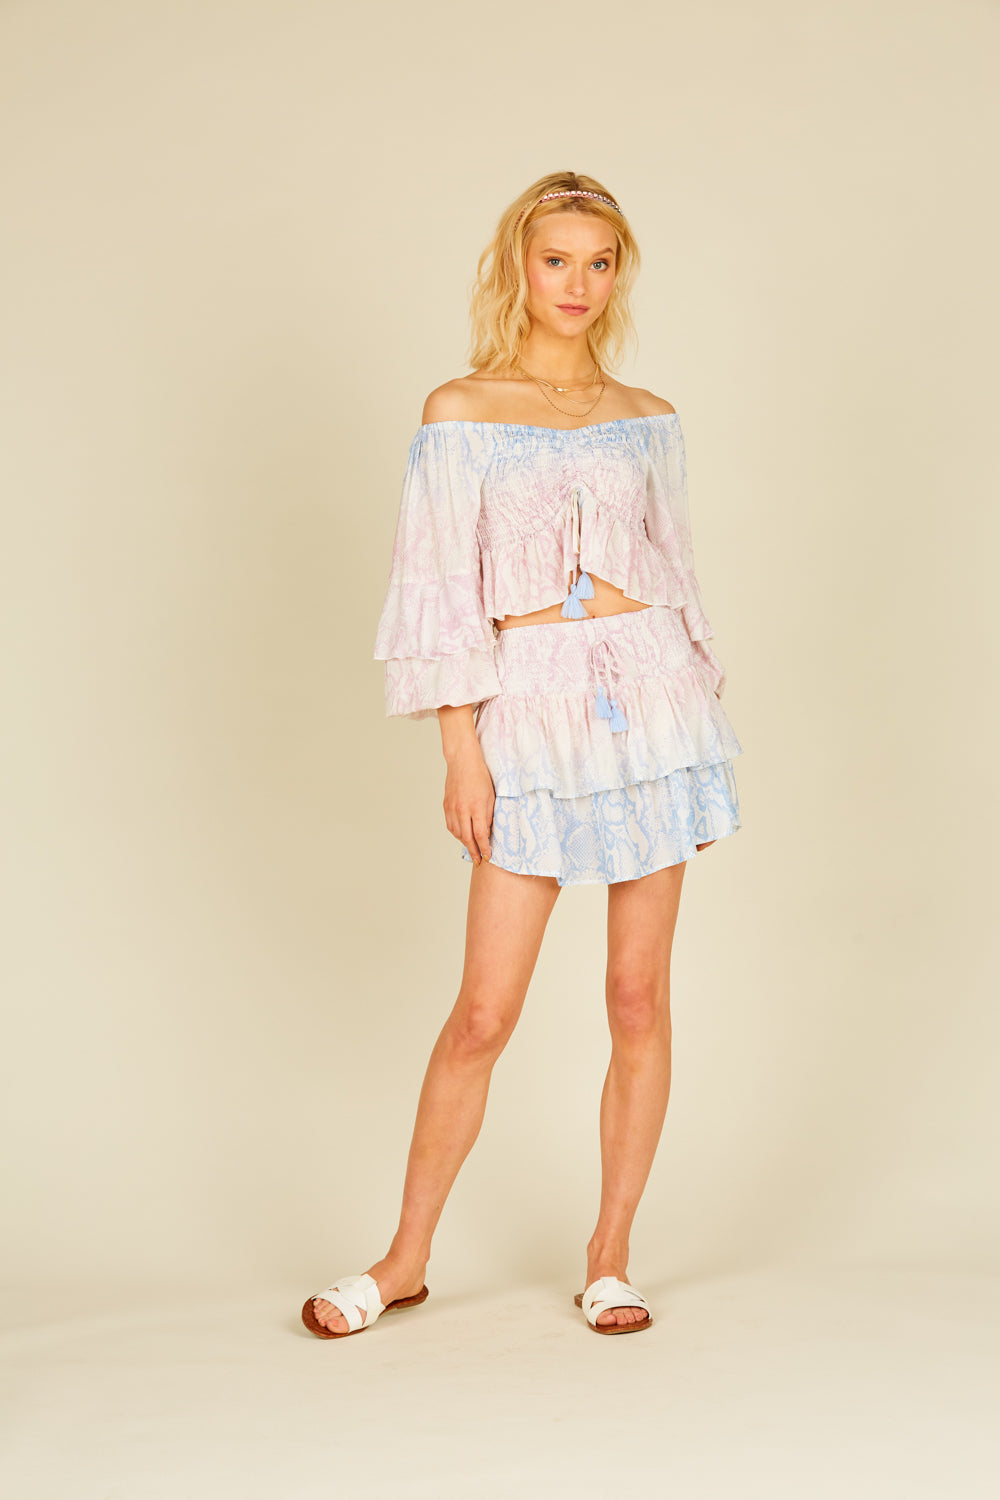 Snakeskin Ruffle Mini Skirt